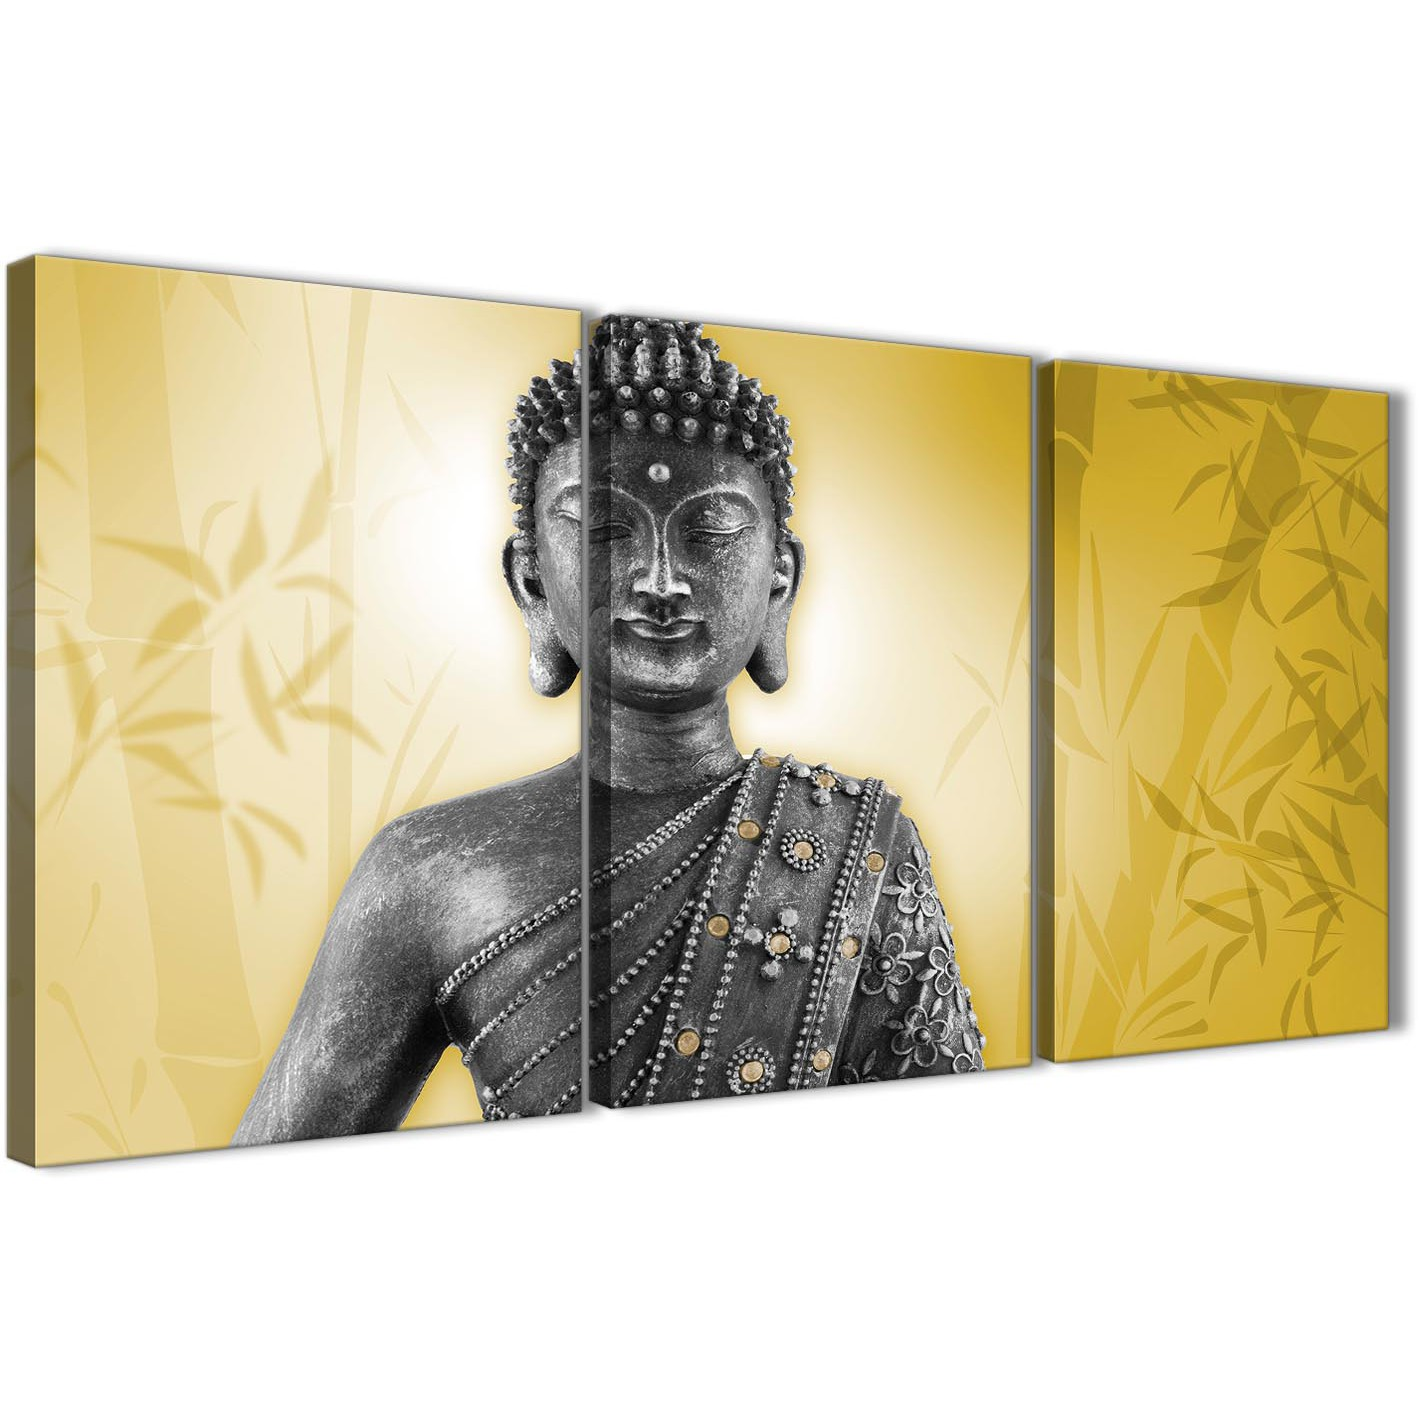 Mustard Yellow and Grey Silver Canvas Art Print of Buddha - Multi 3 ...